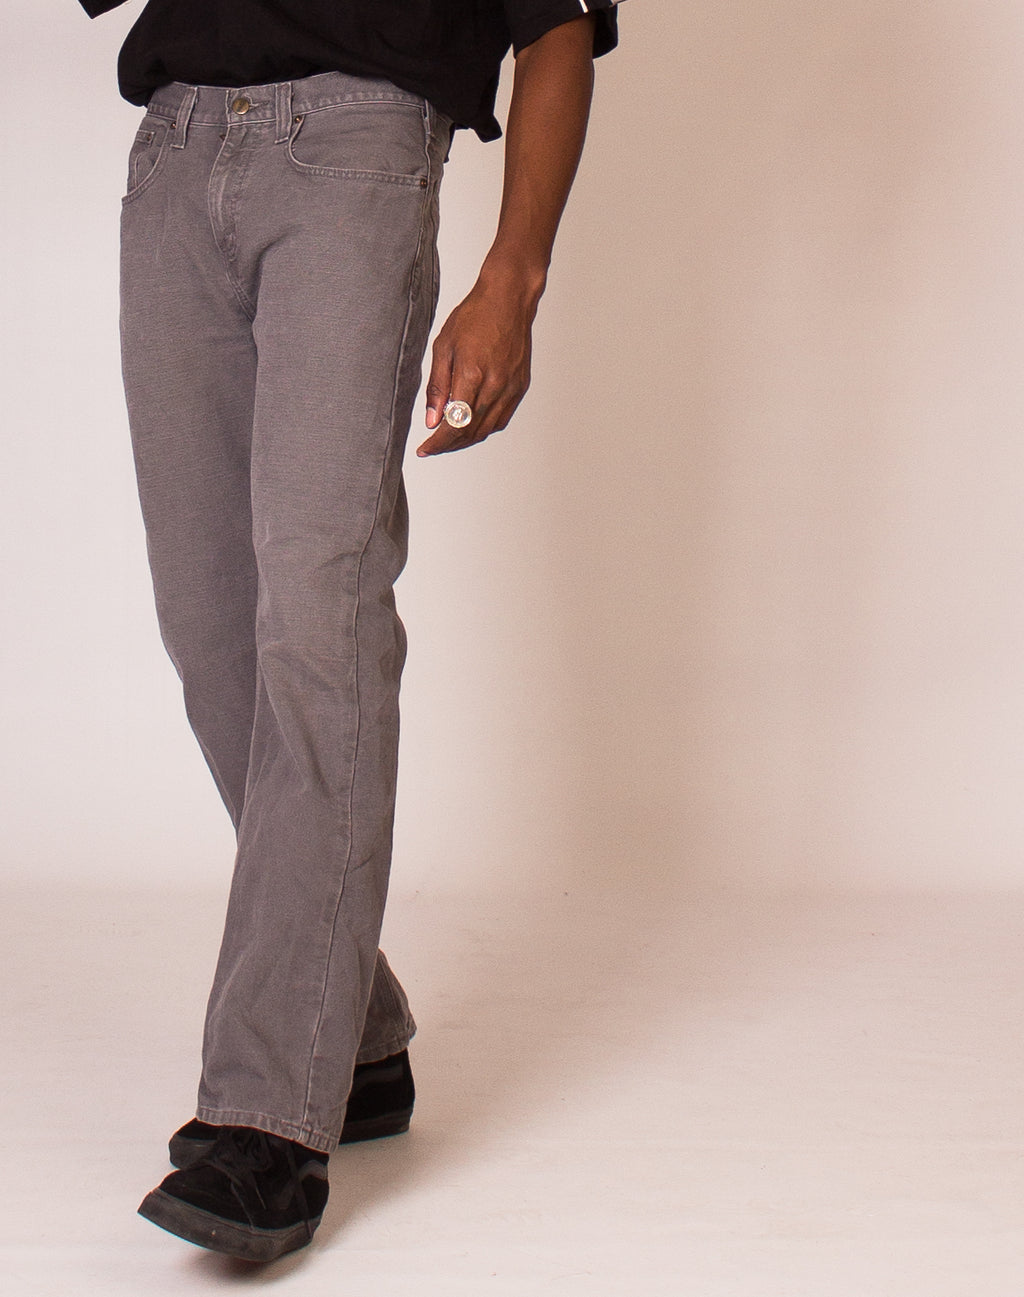 CARHARTT GREY RELAXED JEANS